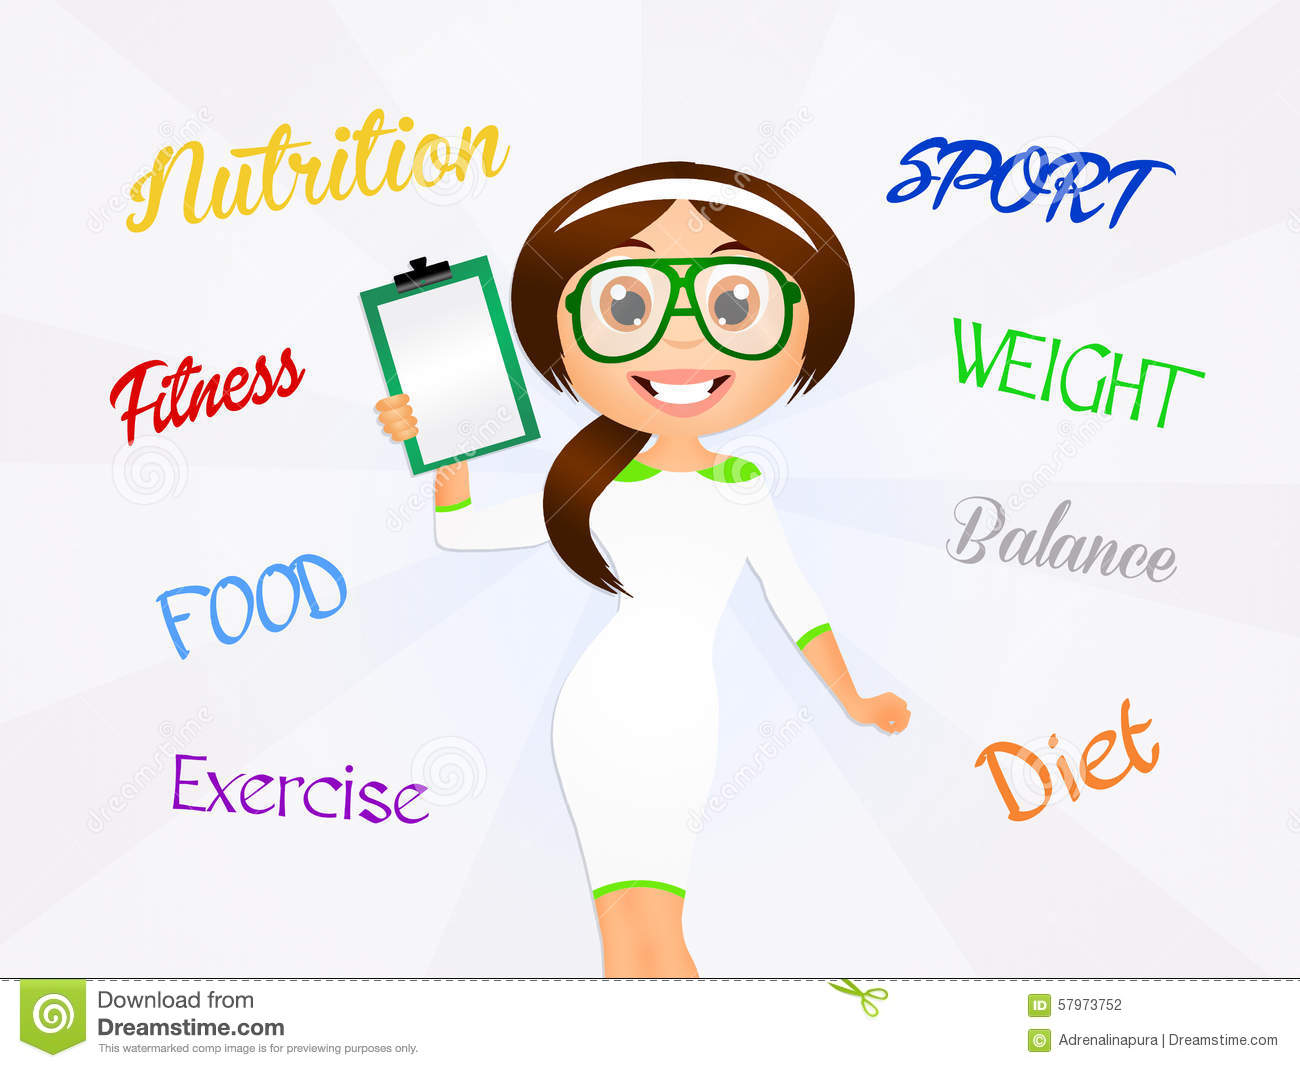 Nutritionist stock illustration. Image of food, fitness ...